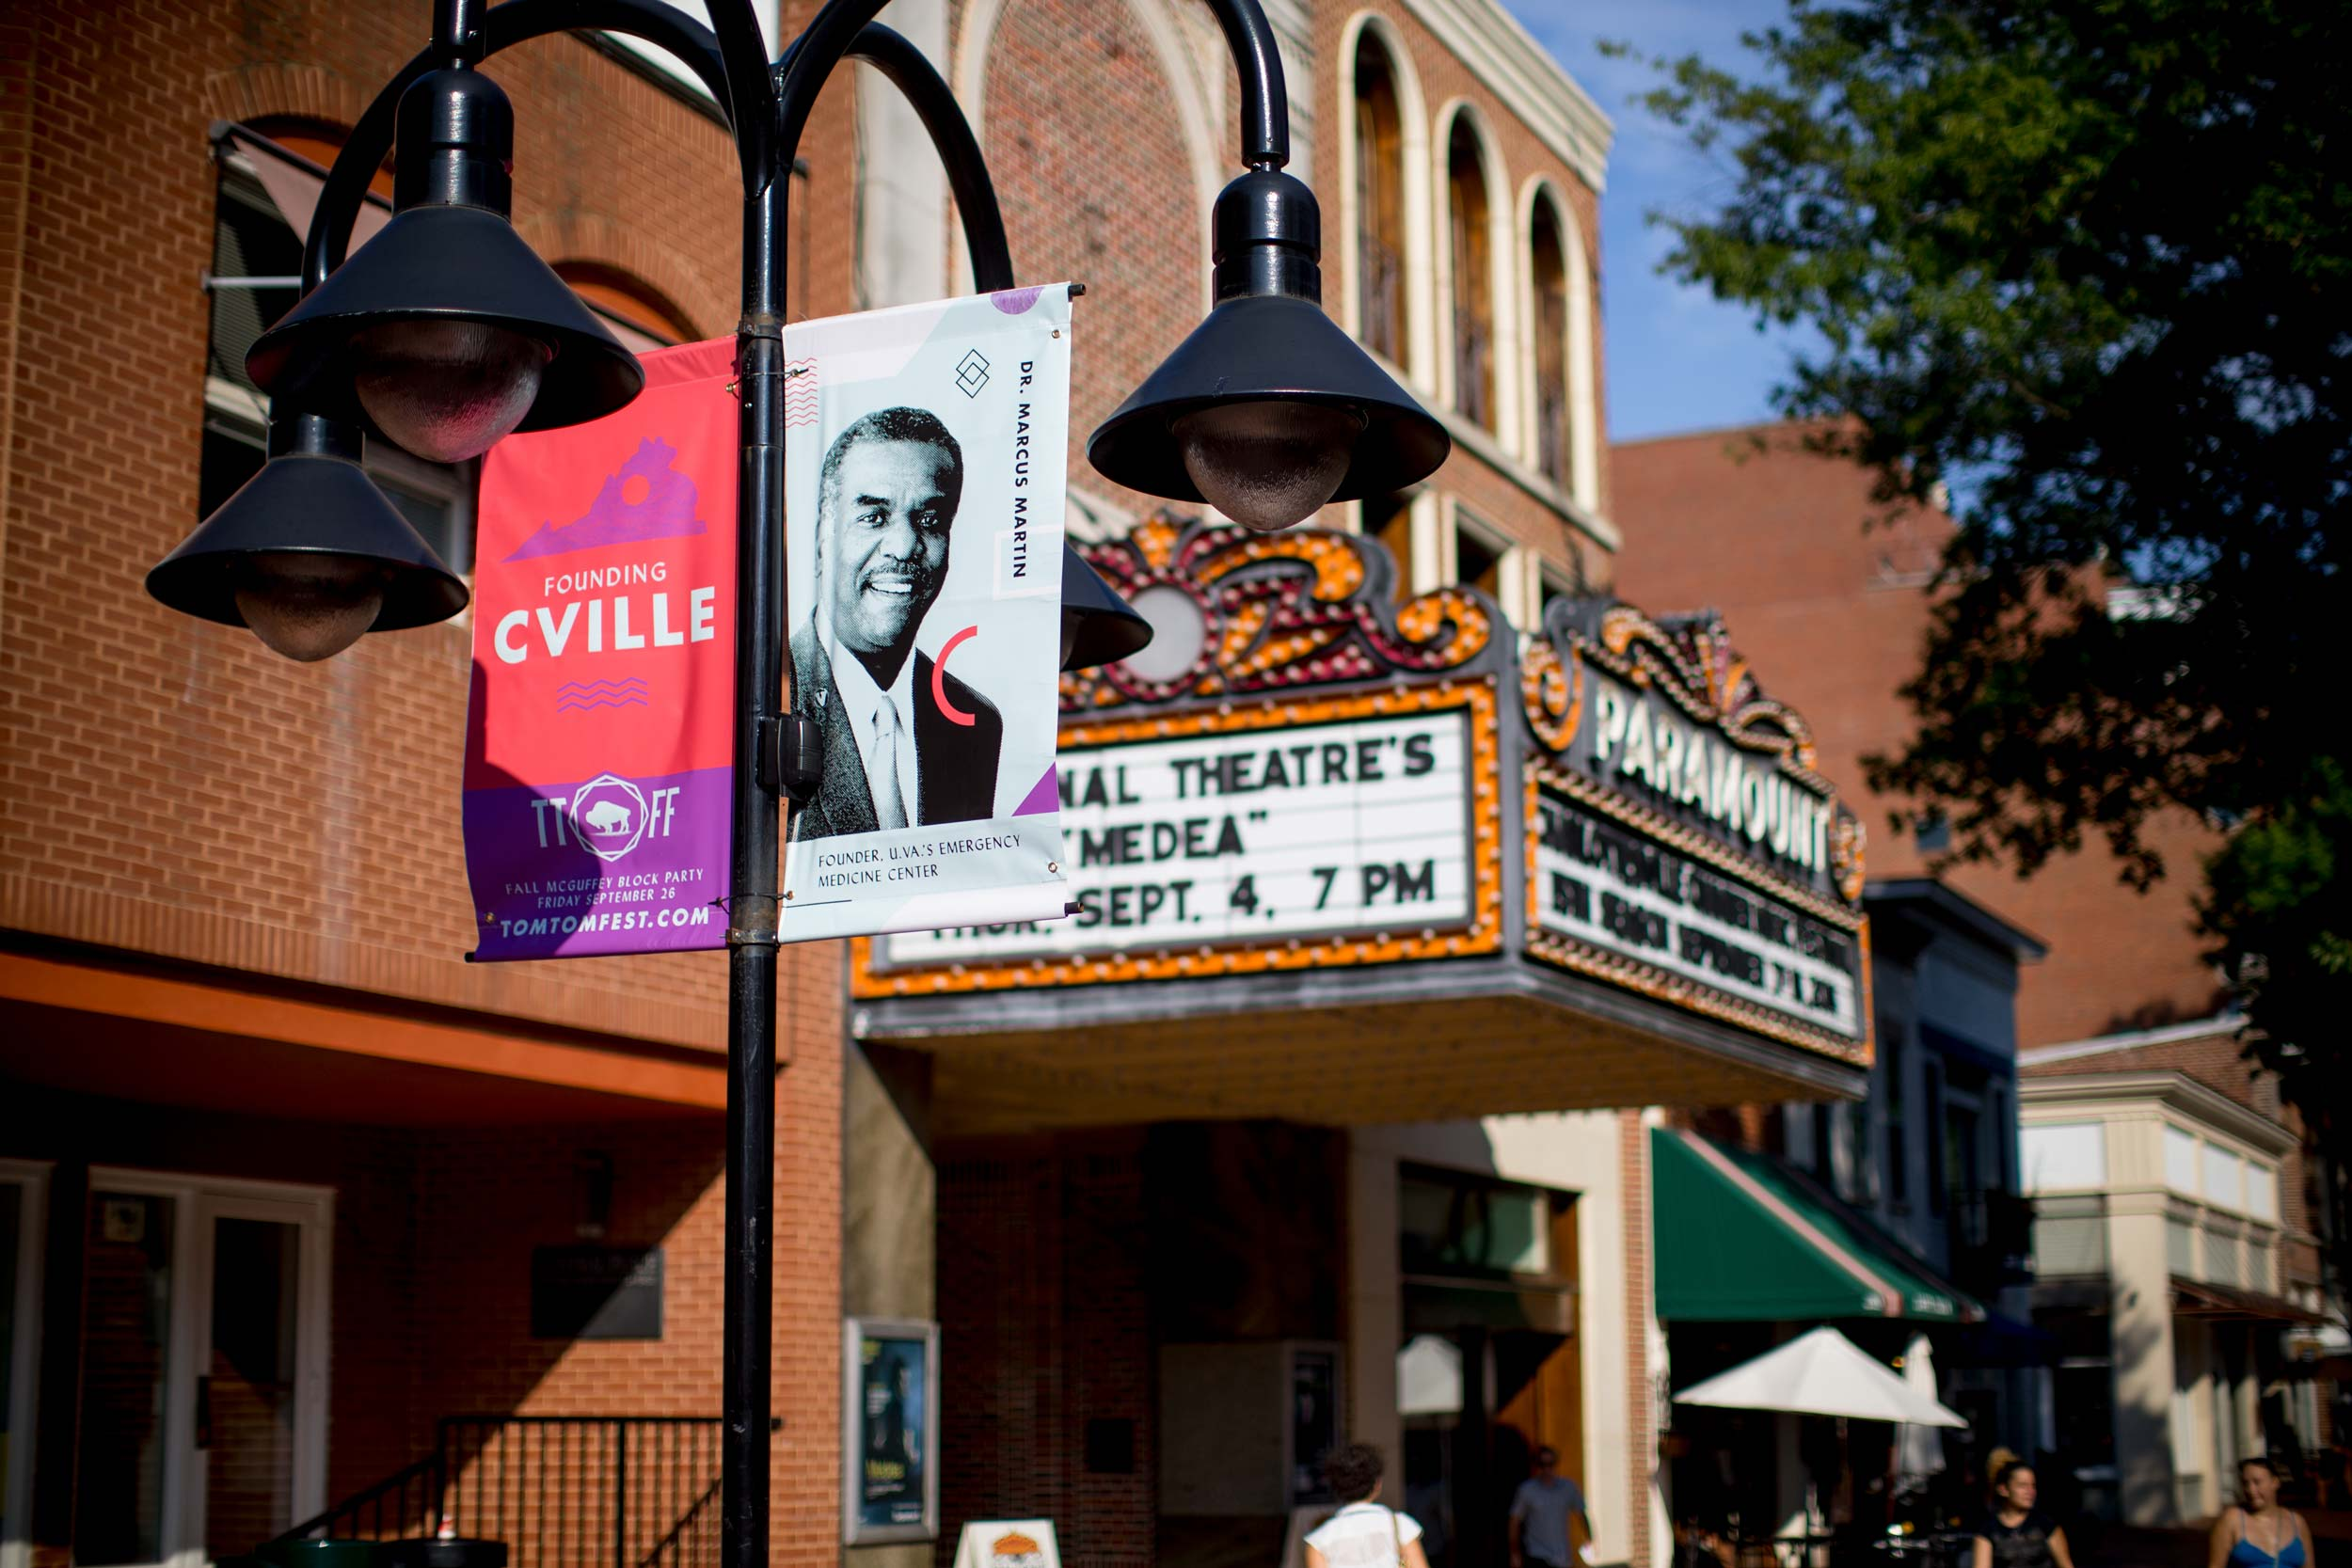 Among his many accolades, Martin received a Charlottesville Tom Tom Festival C'ville Founders Award in 2014. (Photo by Sanjay Suchak, University Communications)